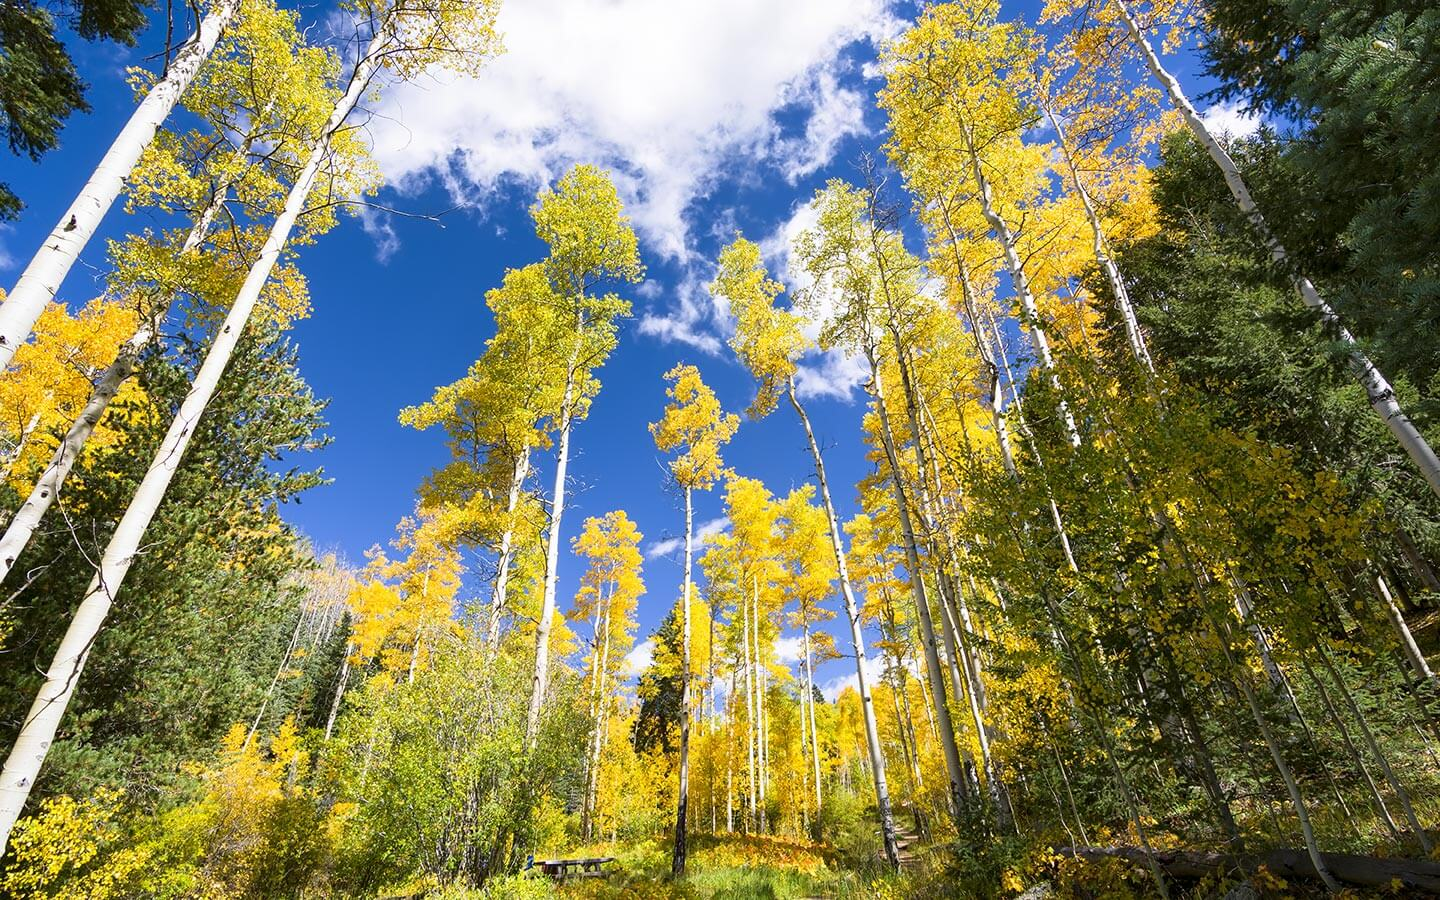 Fall Mountaons In The Sun Wallpaper Your Guide To The Holidays In Santa Fe Top Events